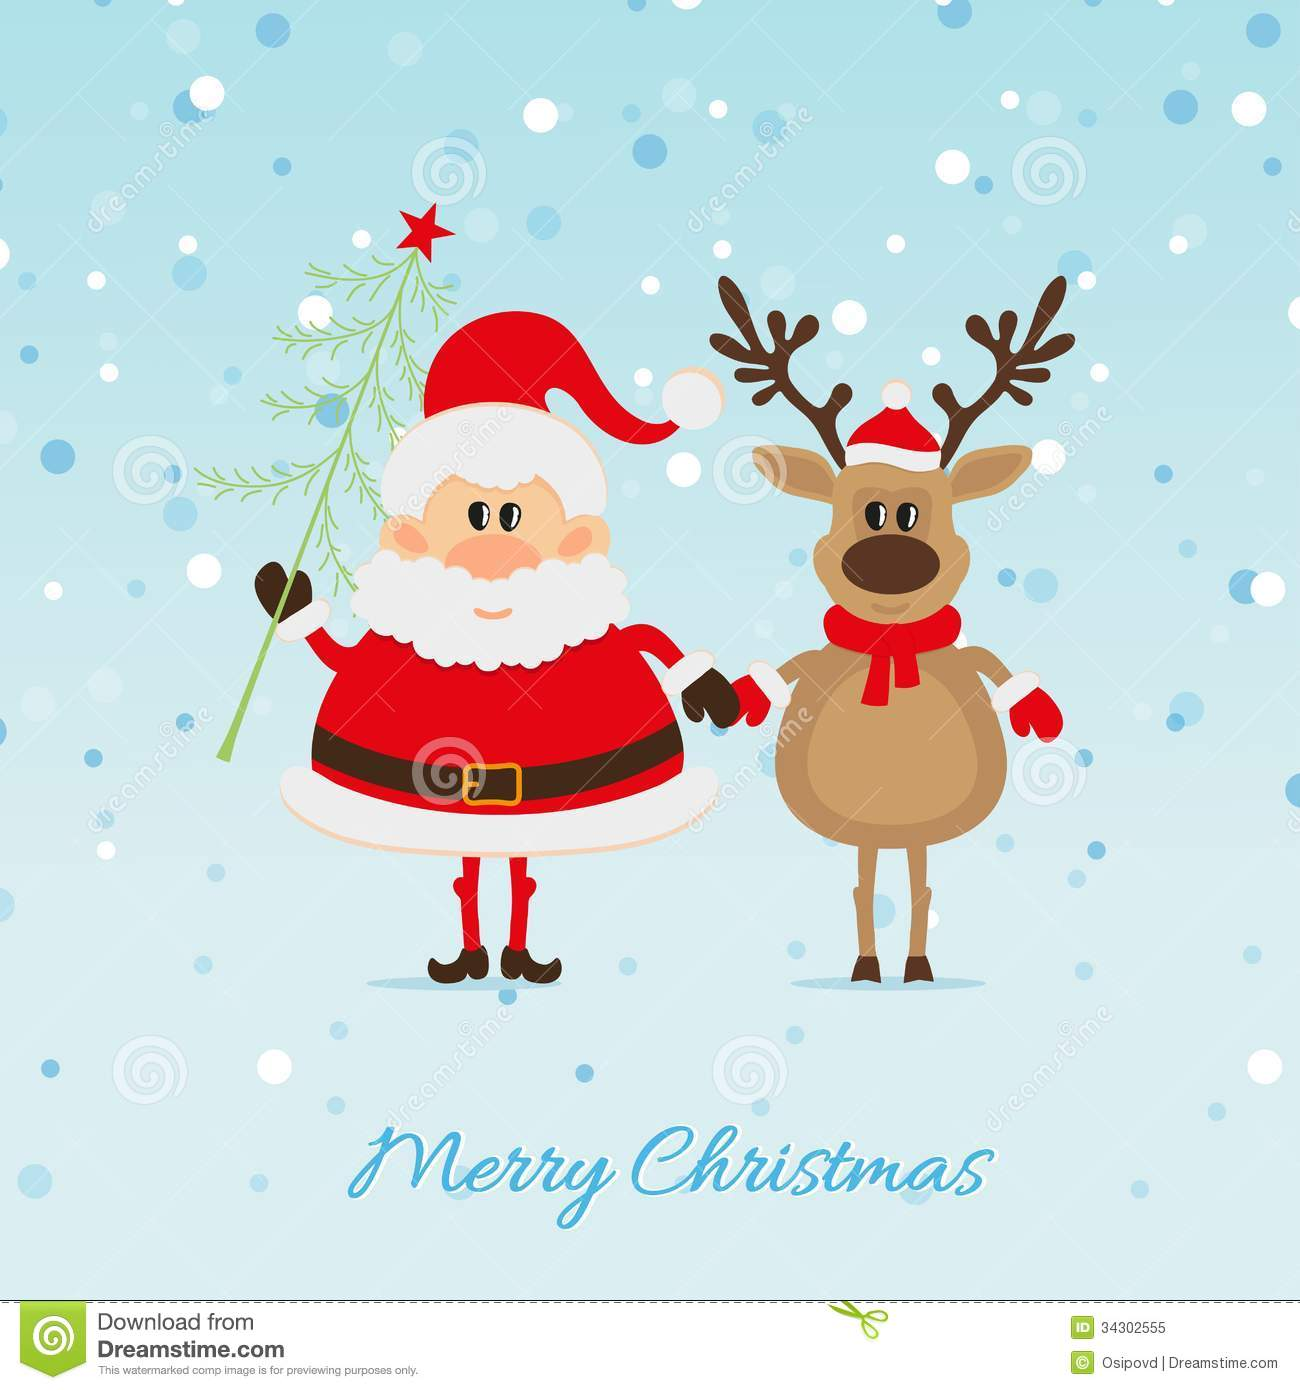 Santa Claus With Christmas Tree And Reindeer Royalty Free Stock ...